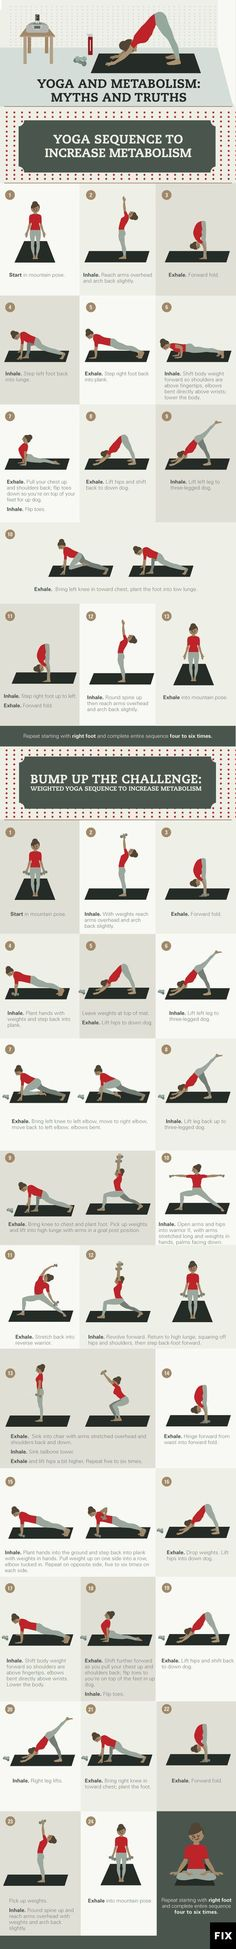 Find out which yoga poses will boost your metabolism throughout the day! #Yoga http://www.fix.com/blog/yoga-and-metabolism/